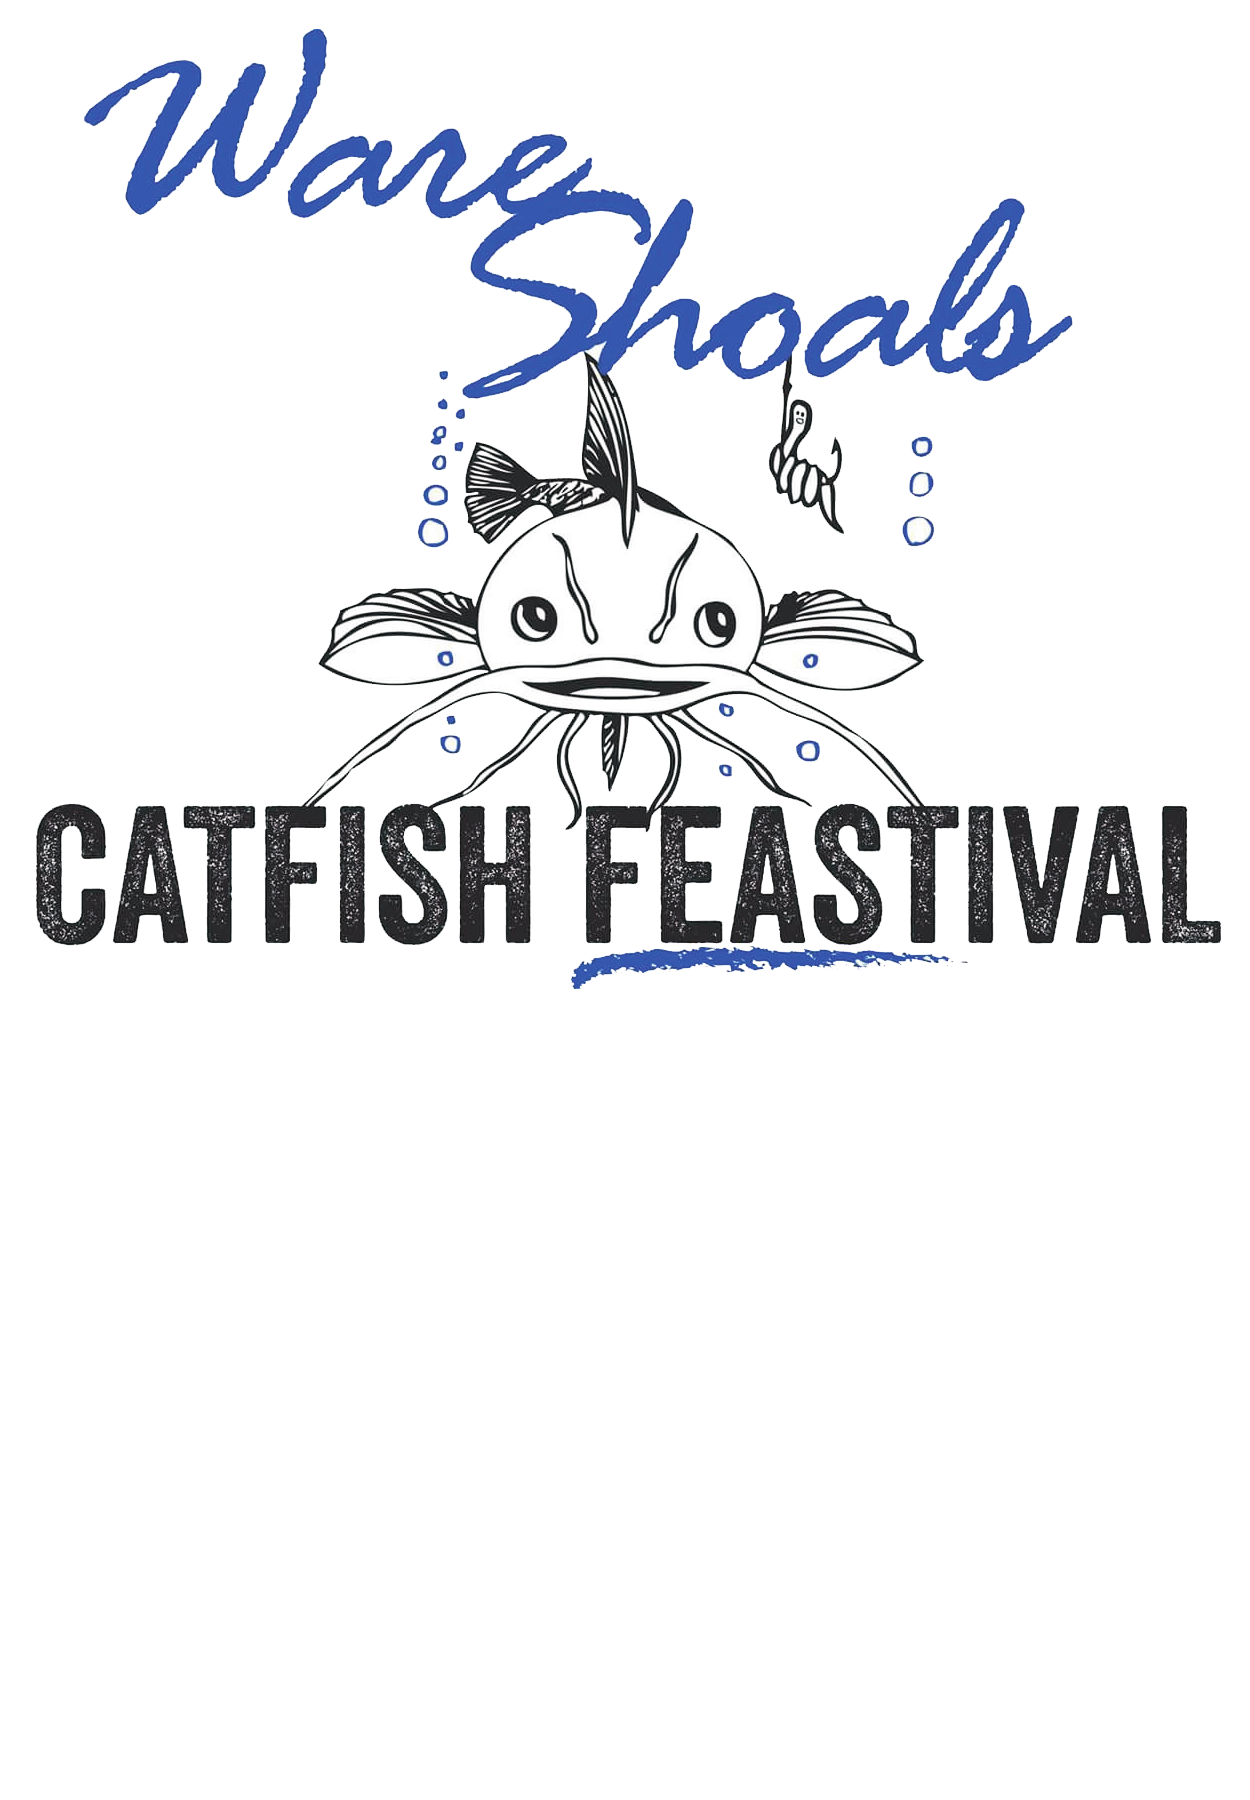 Catfish Feastival Logo